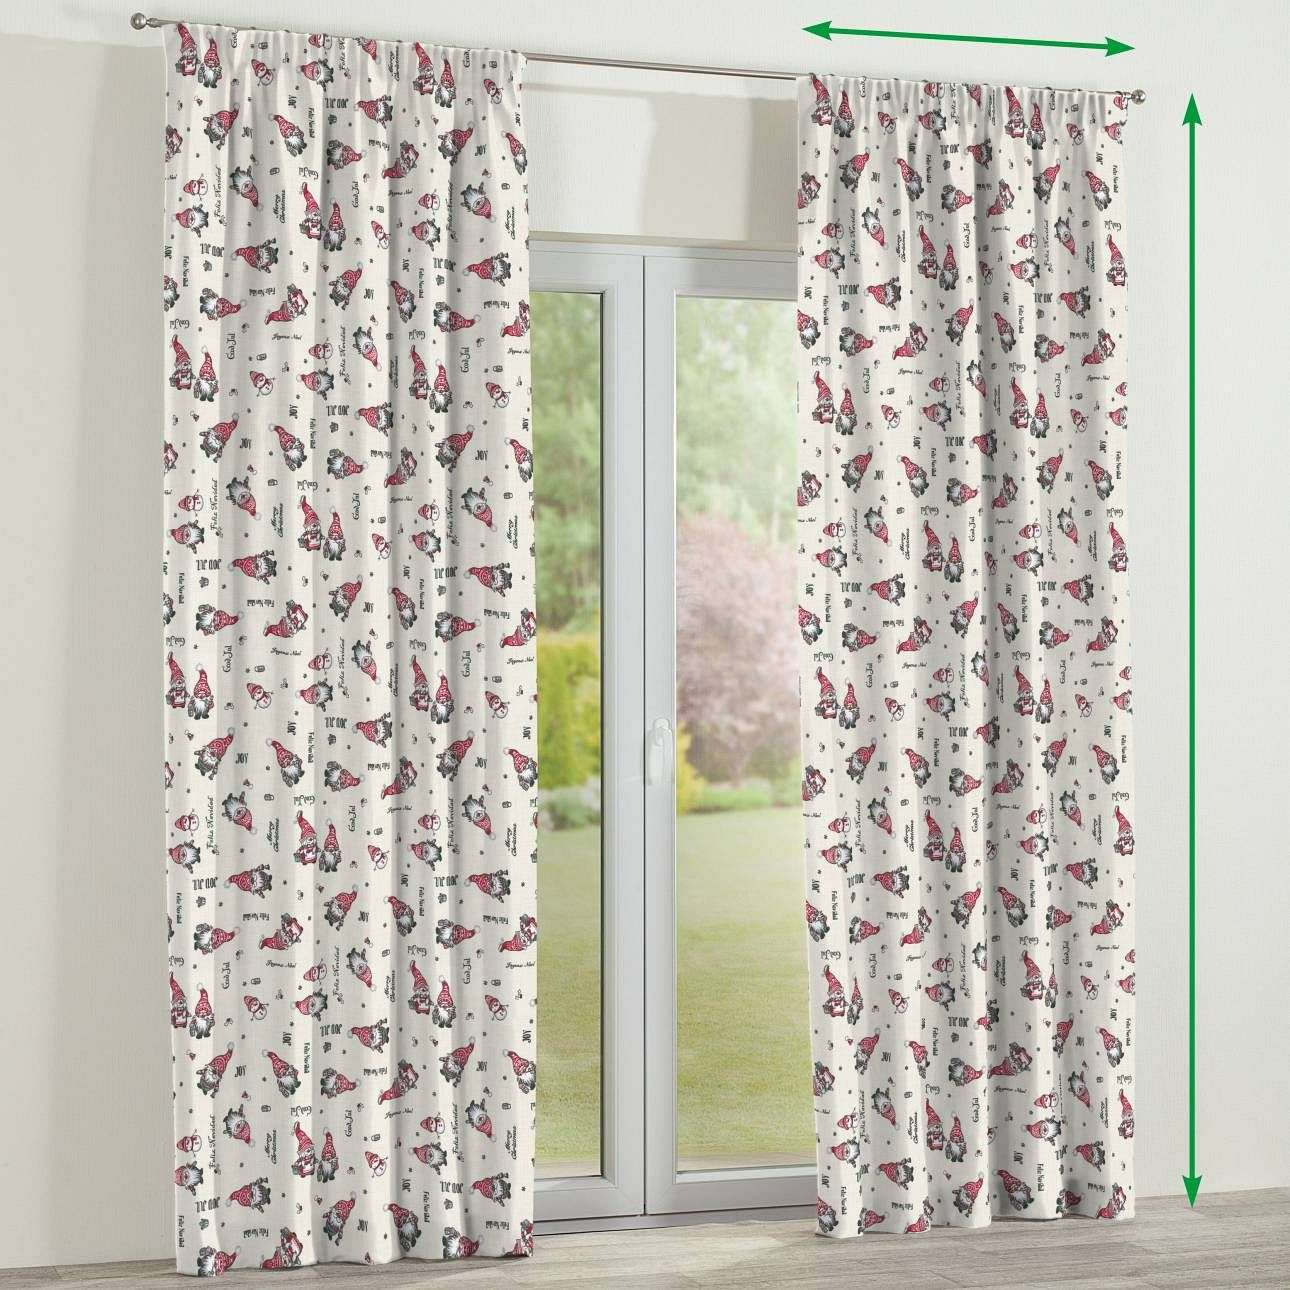 Pencil pleat curtains in collection Christmas, fabric: 629-28